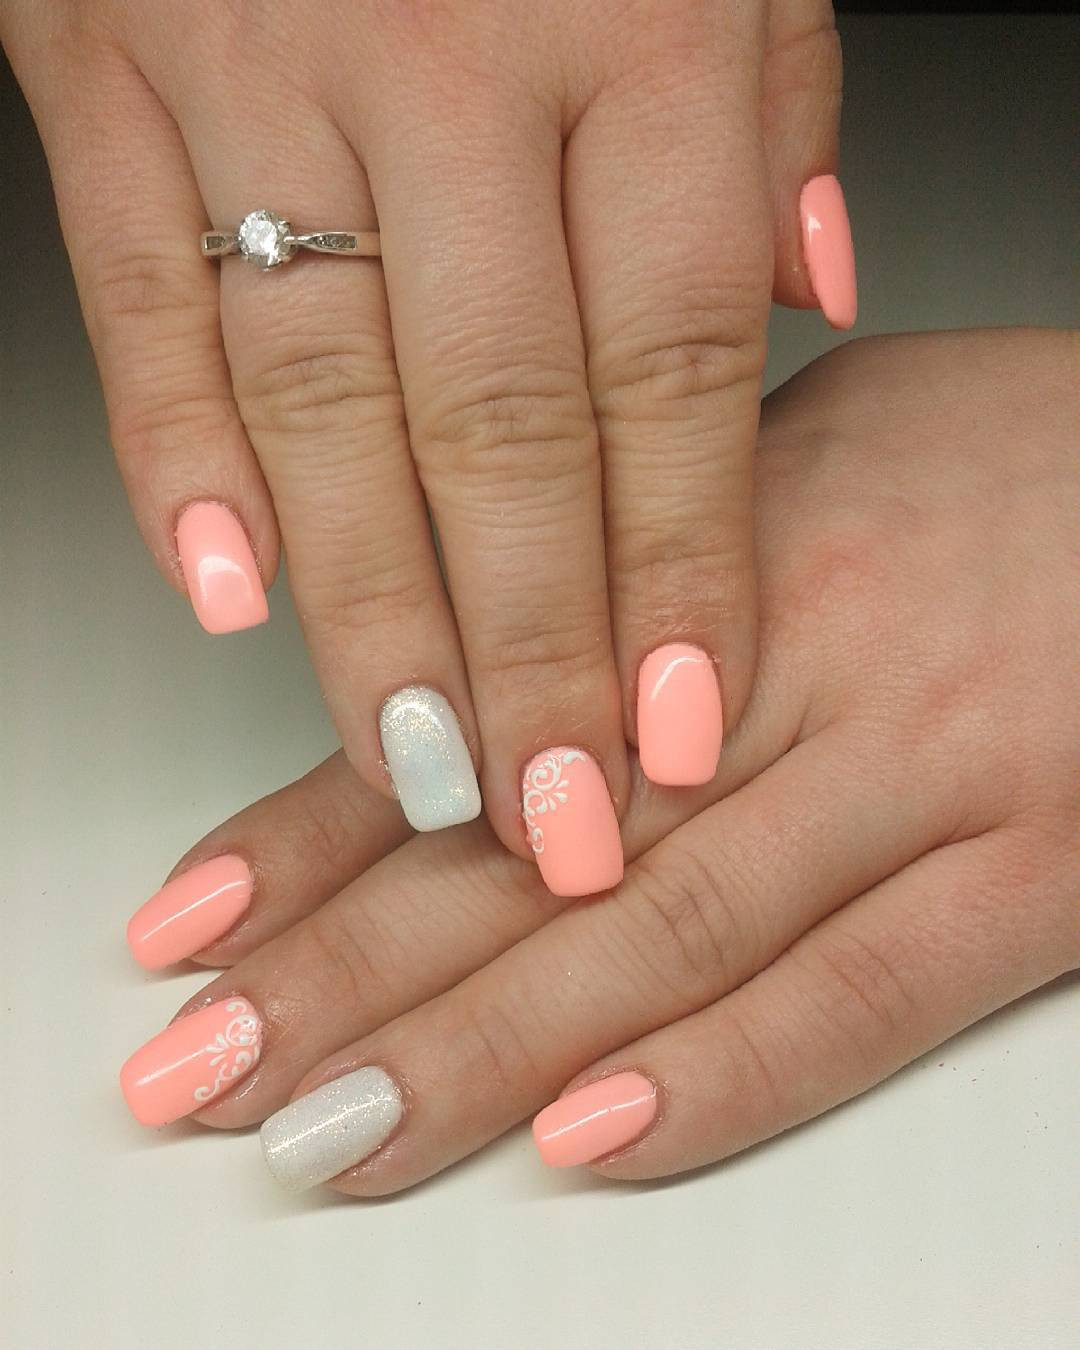 Peach Nail Designs  21 Peach Nail Art Designs Ideas